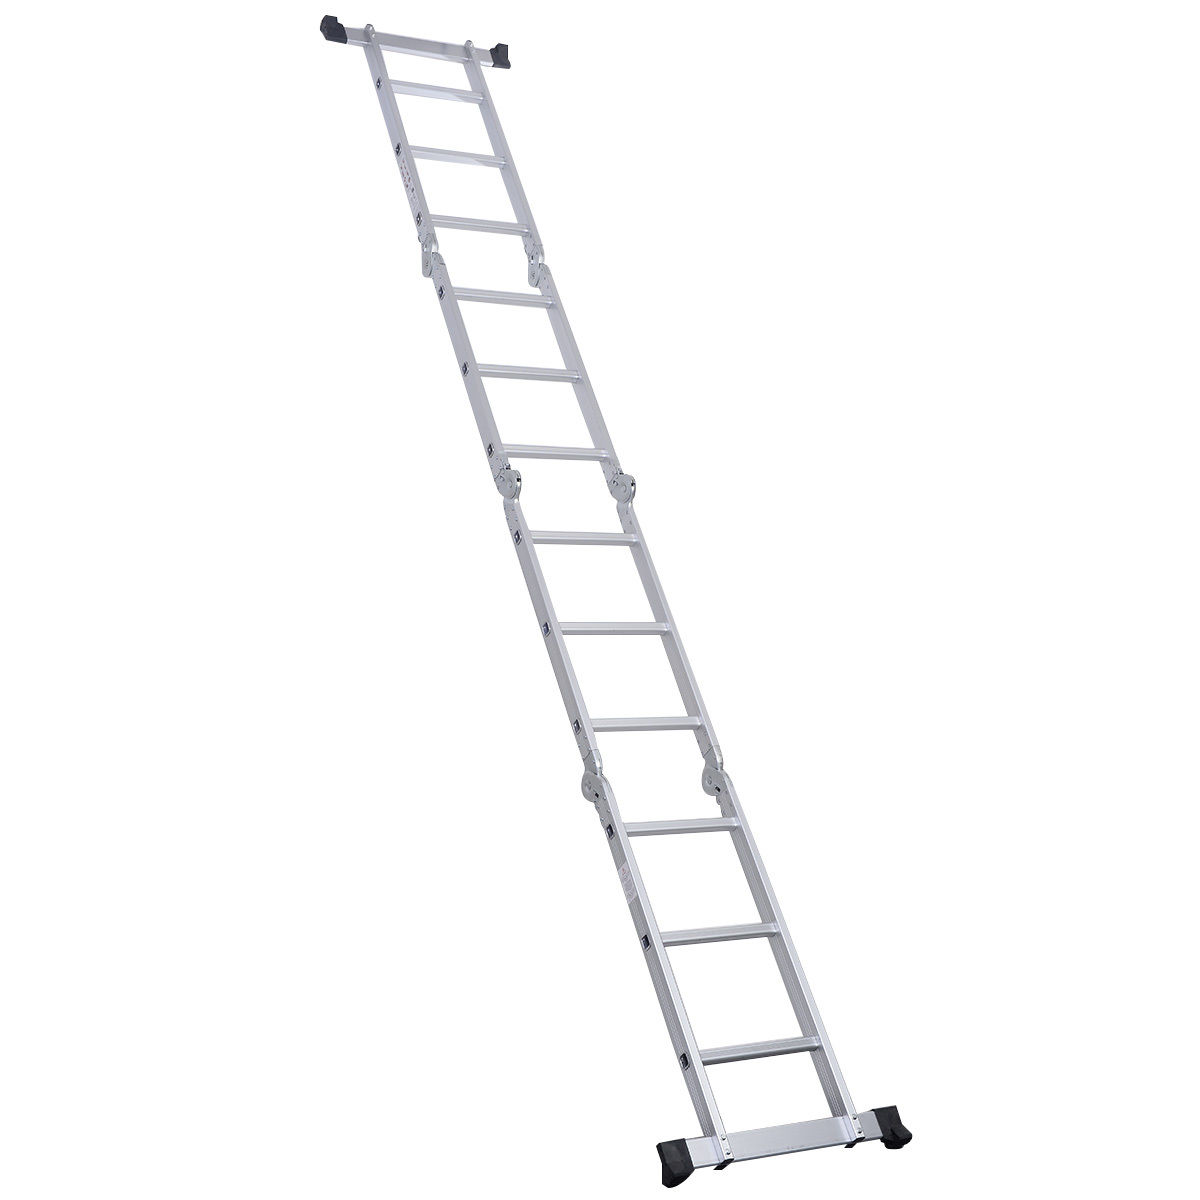 12 5ft Multi Purpose Aluminum Folding Step Ladder Scaffold